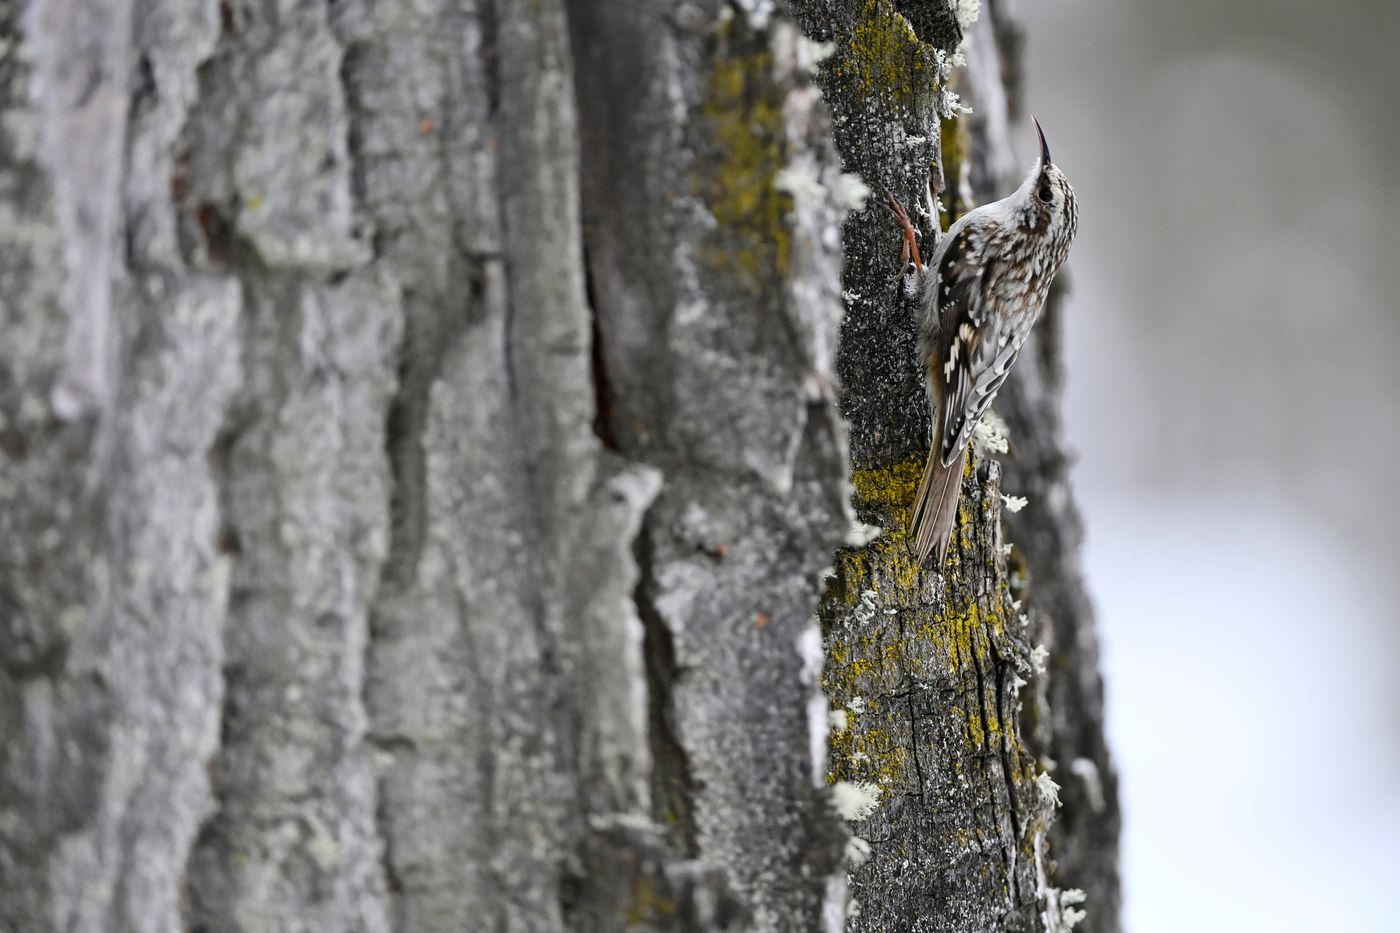 A brown creeper travels up the bark of a cottonwood tree in Far North Bicentennial Park on April 14, 2021. (Marc Lester / ADN)